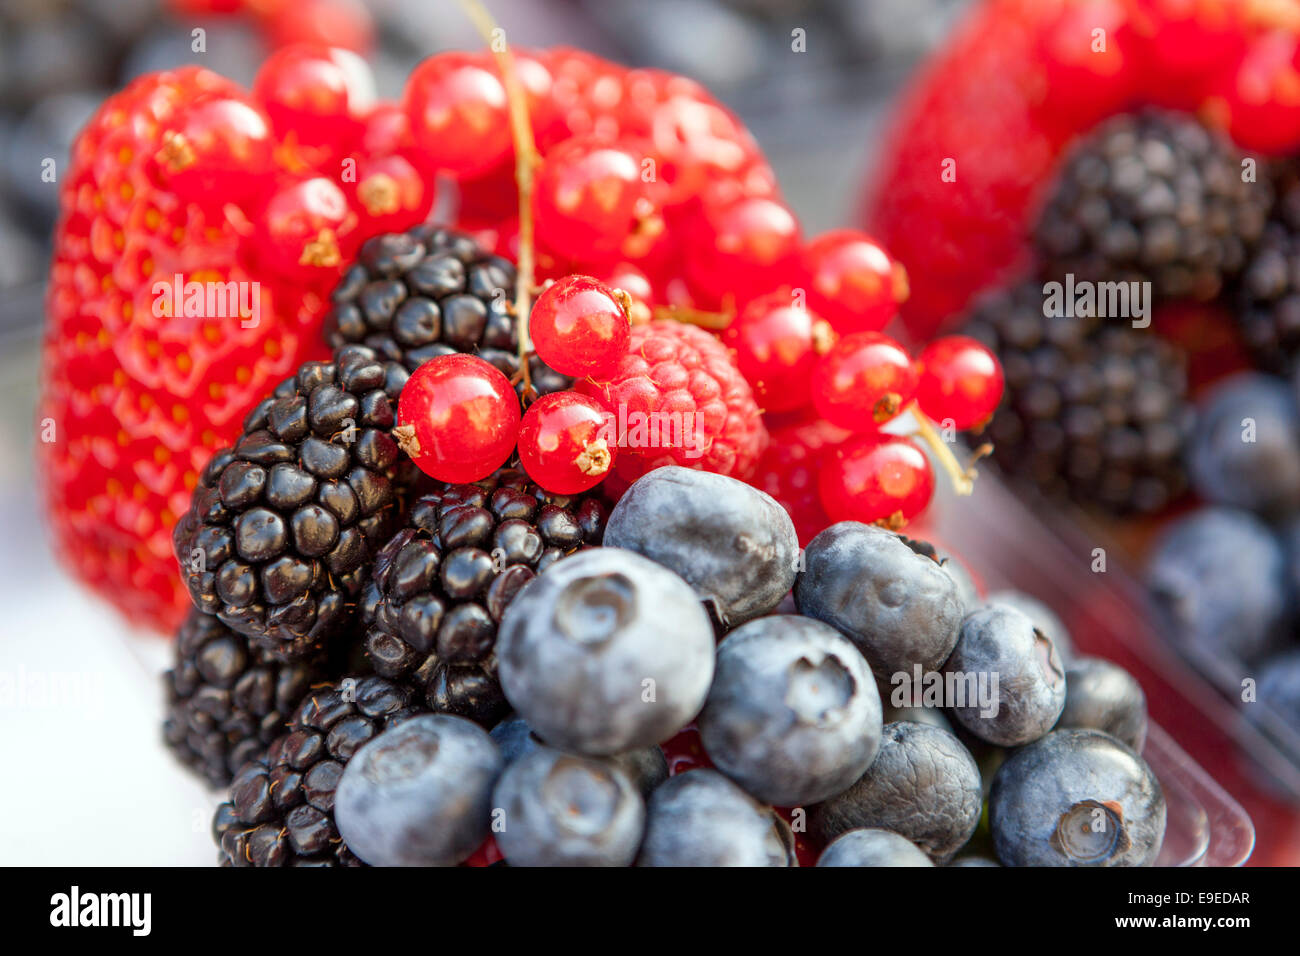 Different colorful berries blackberry blueberry strawberry raspberry fruit - Stock Image